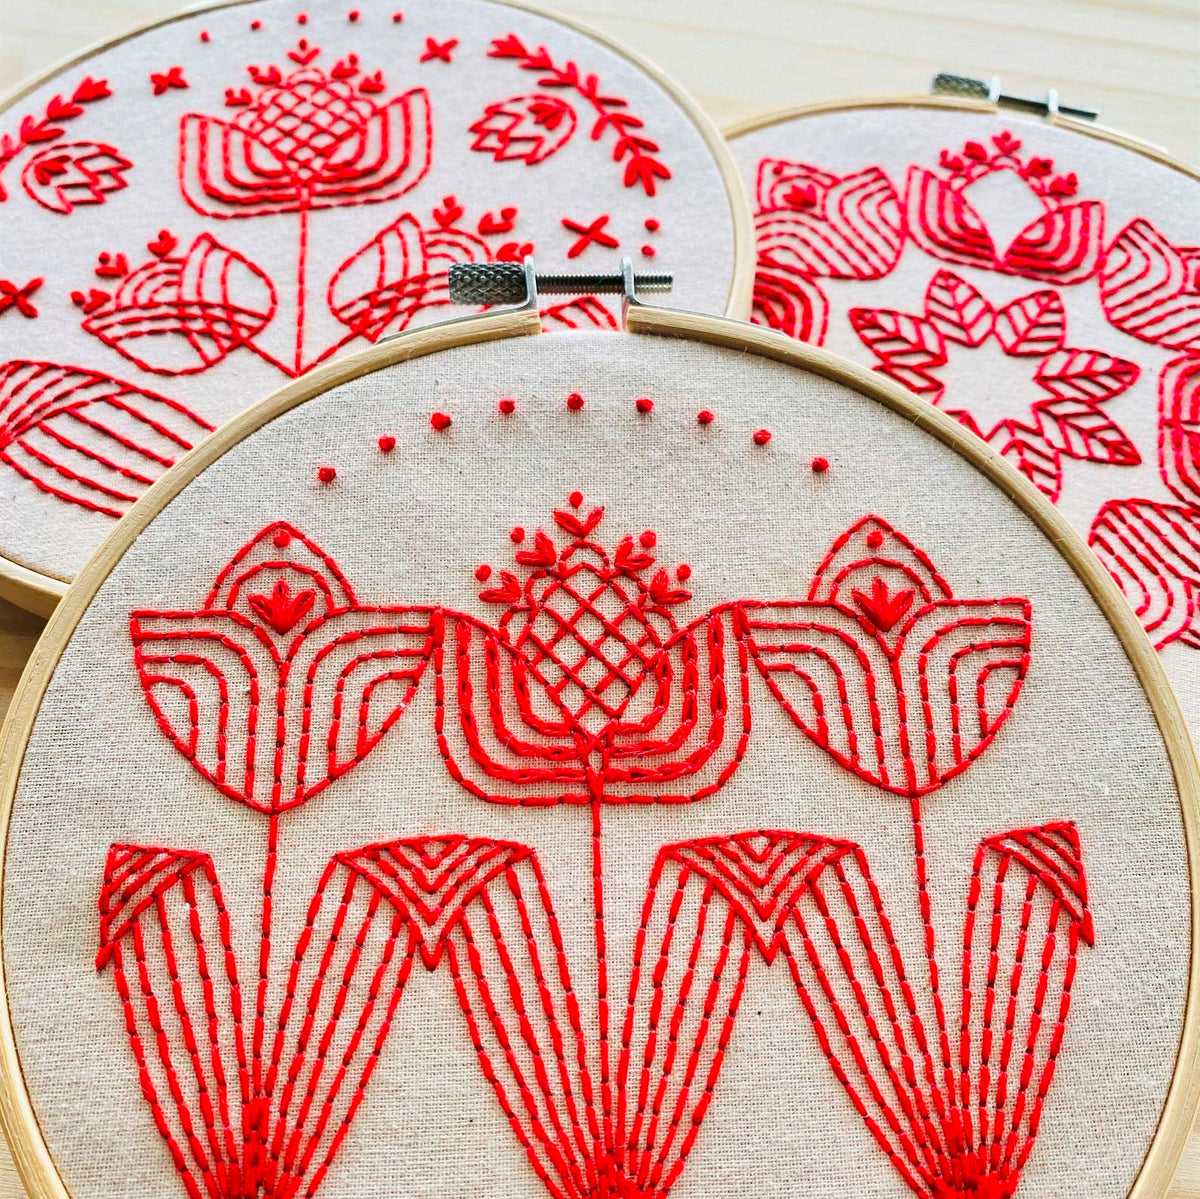 Tulips in a Row Hand Embroidery Kit